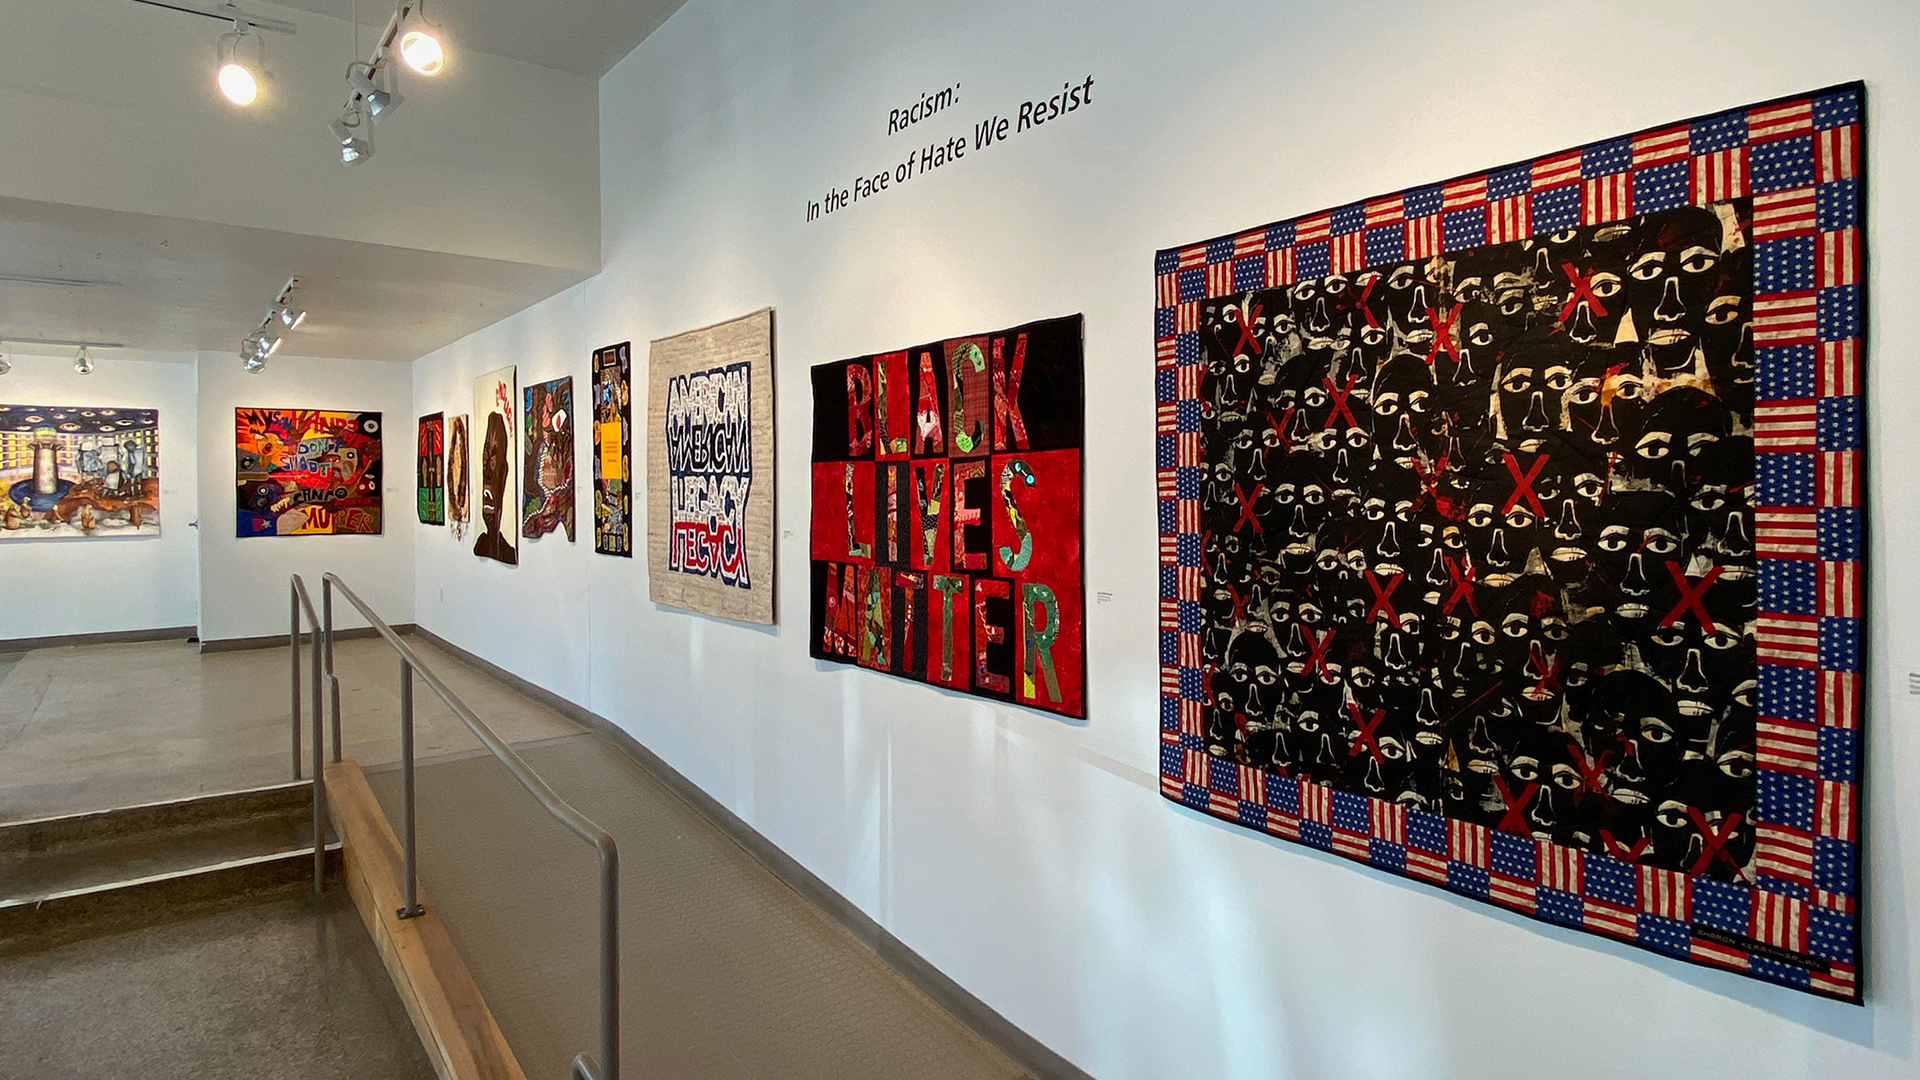 Quilts hanging on the walls of an art gallery